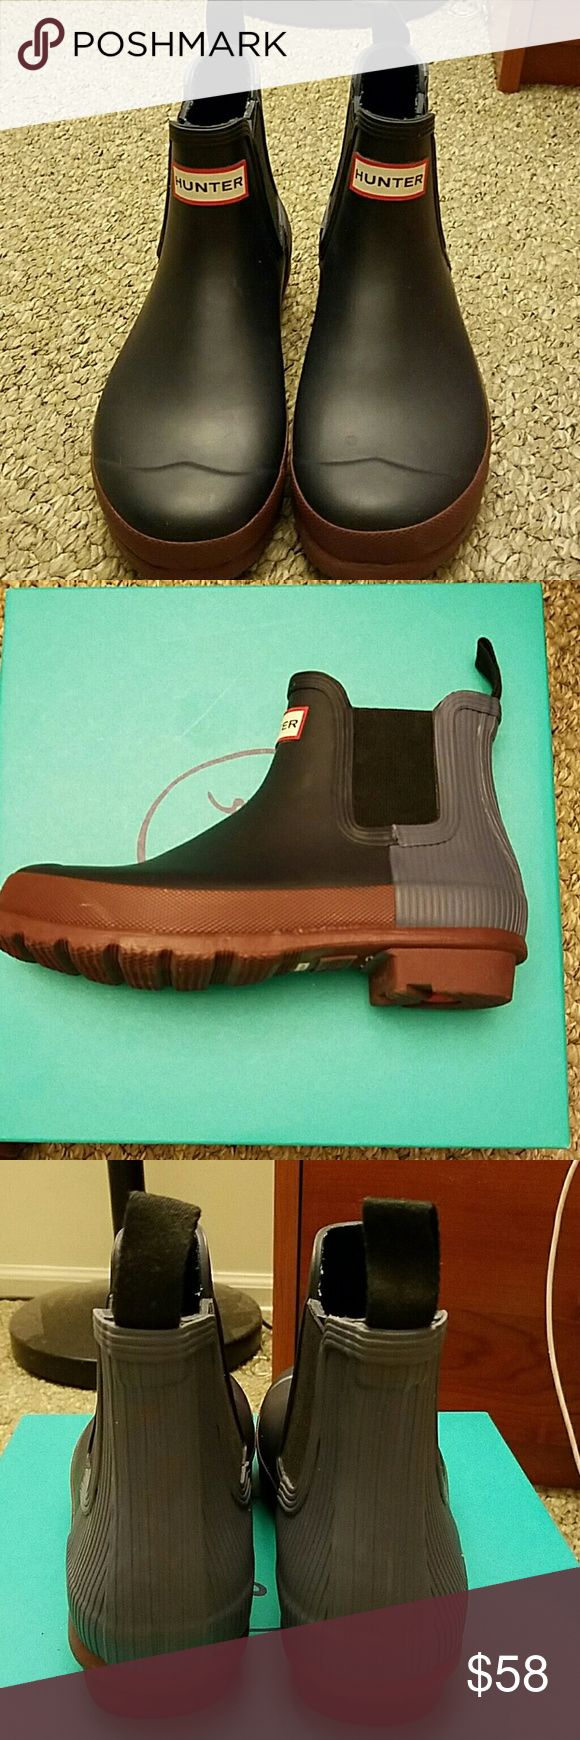 Short Hunter Original Wellie Booties Sz 7 (EU 38) Ankle Hunter booties, super cute.  Front is navy with Hunter tag, back is light cornflower blue and sole is brown.   Size 7, EU 38.  Fits a true 7.  Do not have original box.  Will ship in other shoe box.  *No trades. * Hunter Boots Shoes Winter & Rain Boots